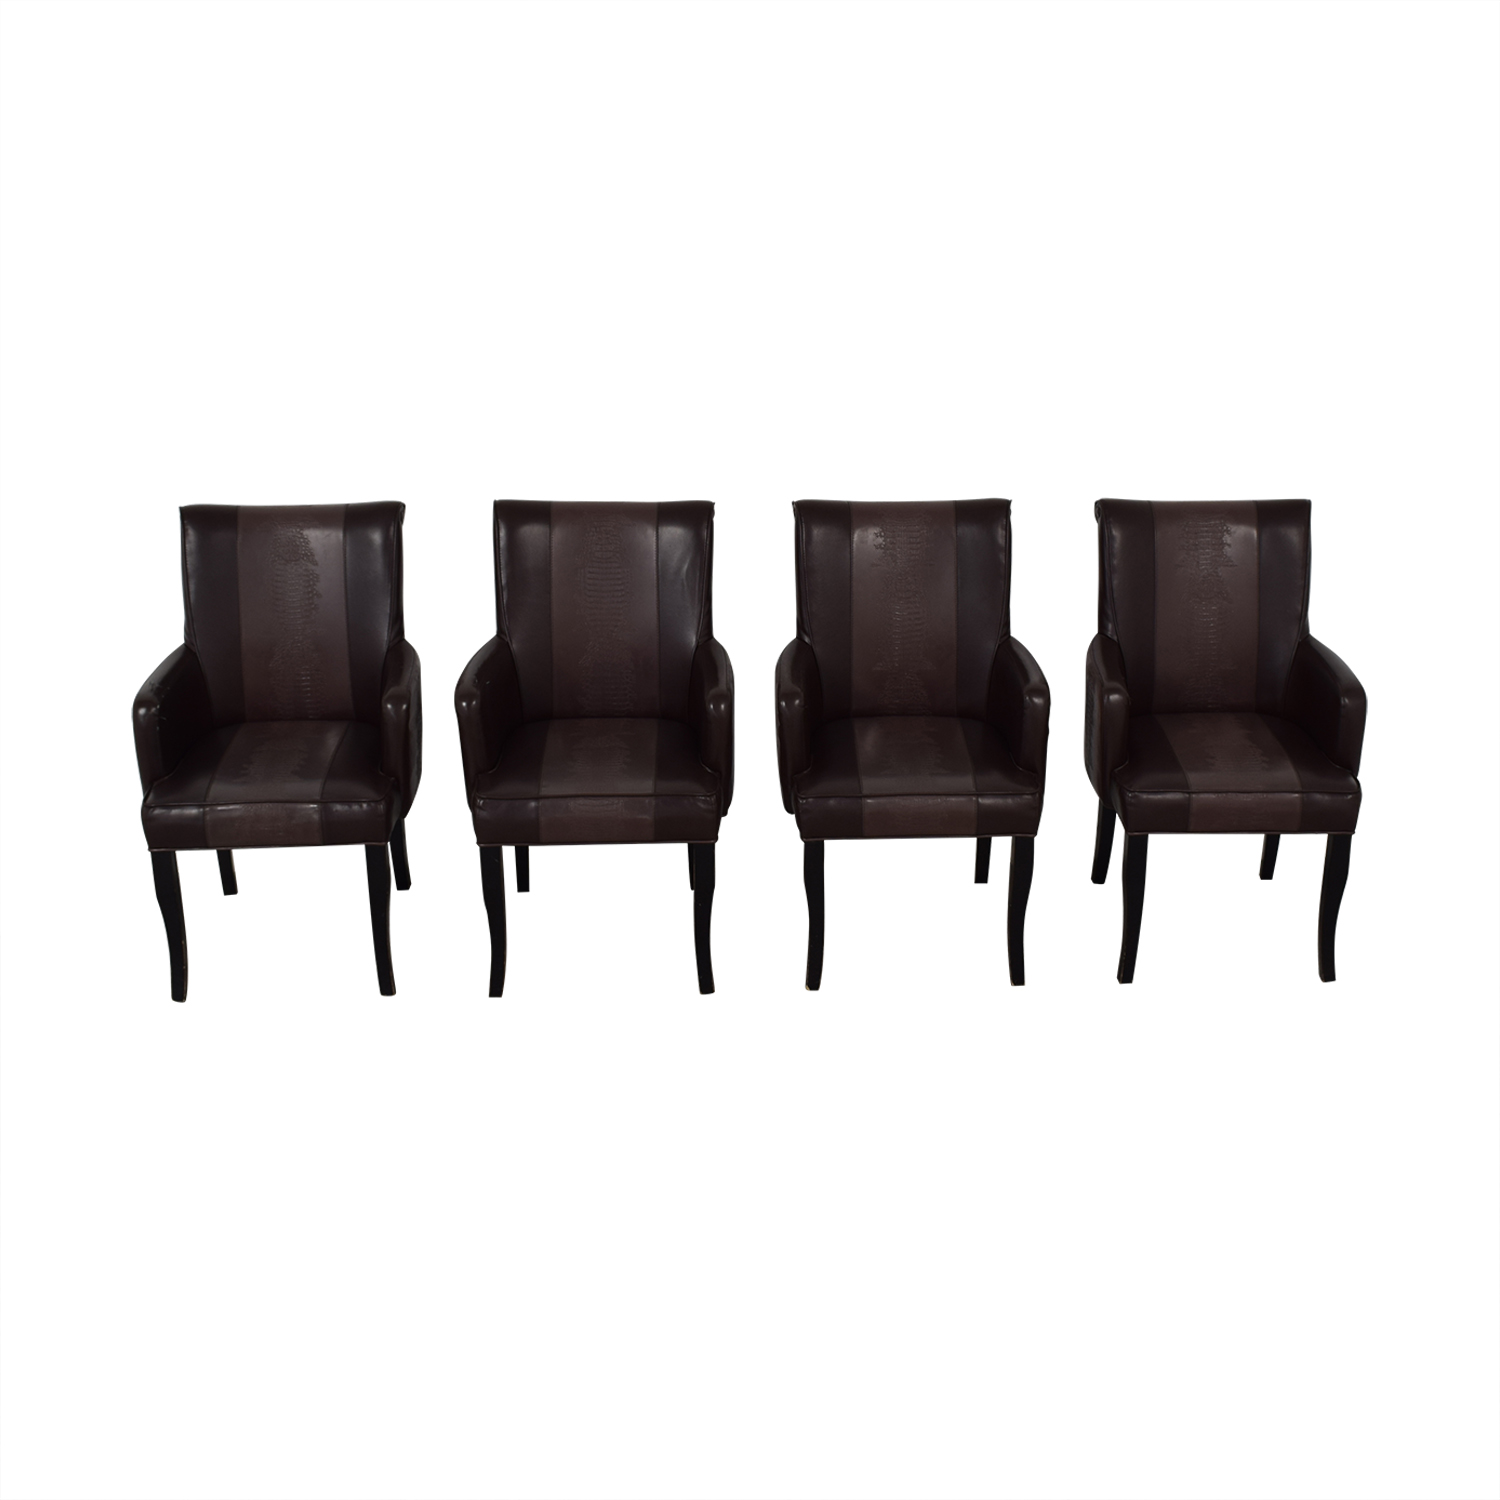 Bloomingdale's Bloomingdale's Brown Leather Dining Chairs Chairs